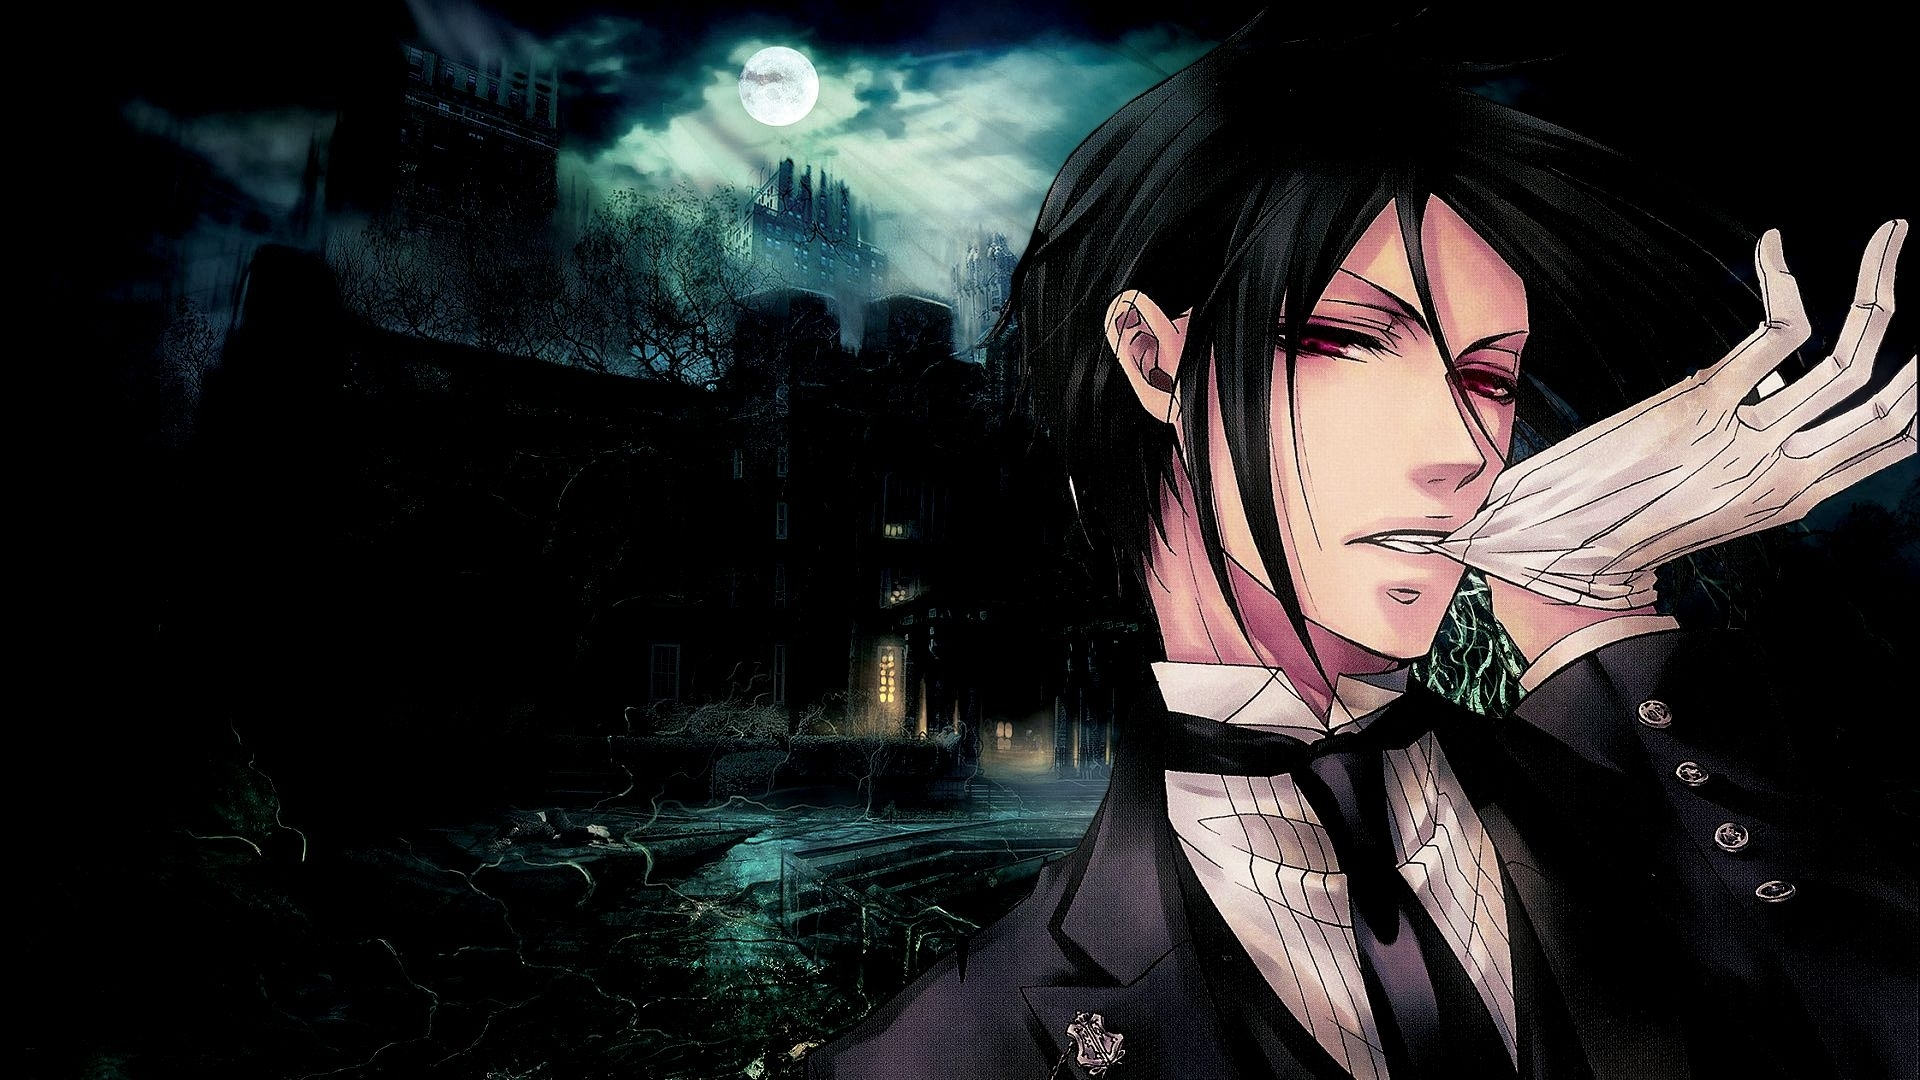 black butler sebastian michaelis wallpapers hd. | black butler